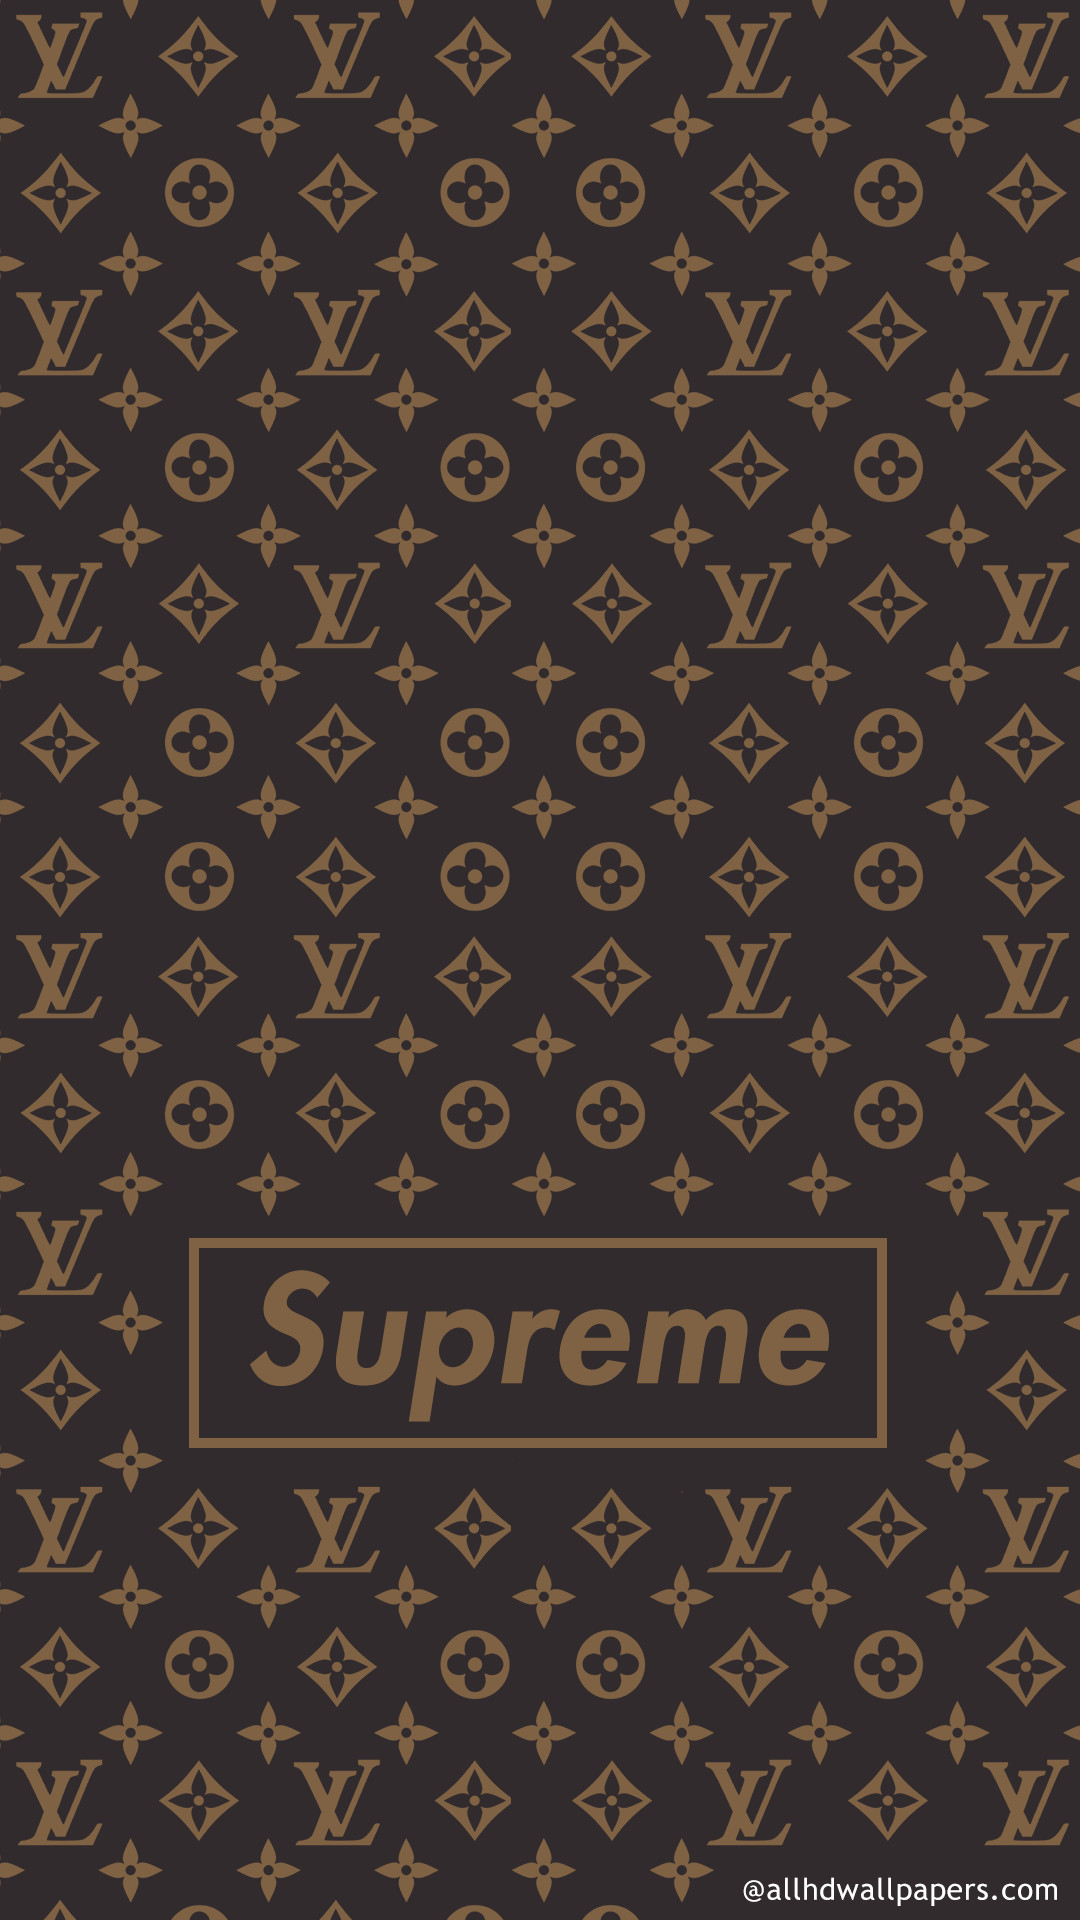 56+] Supreme iPhone Wallpaper Gold on ...